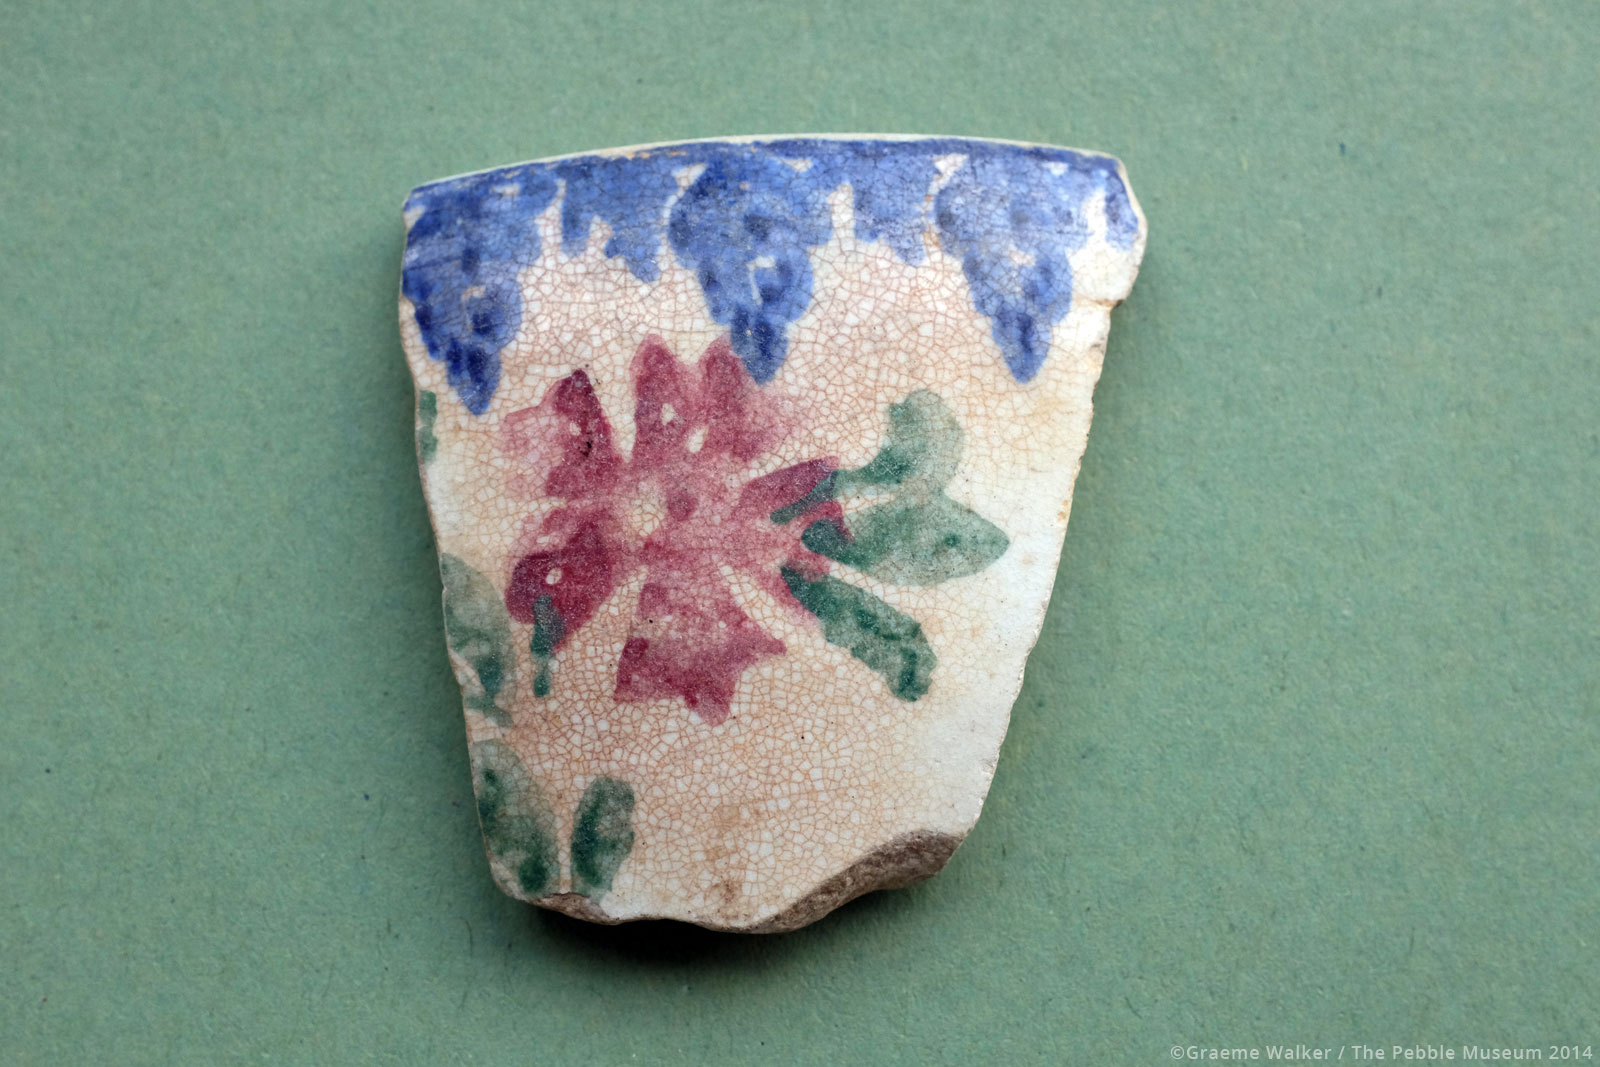 White Ceramic with Blue, Red and Green Motif © Graeme Walker / The Pebble Museum 2019